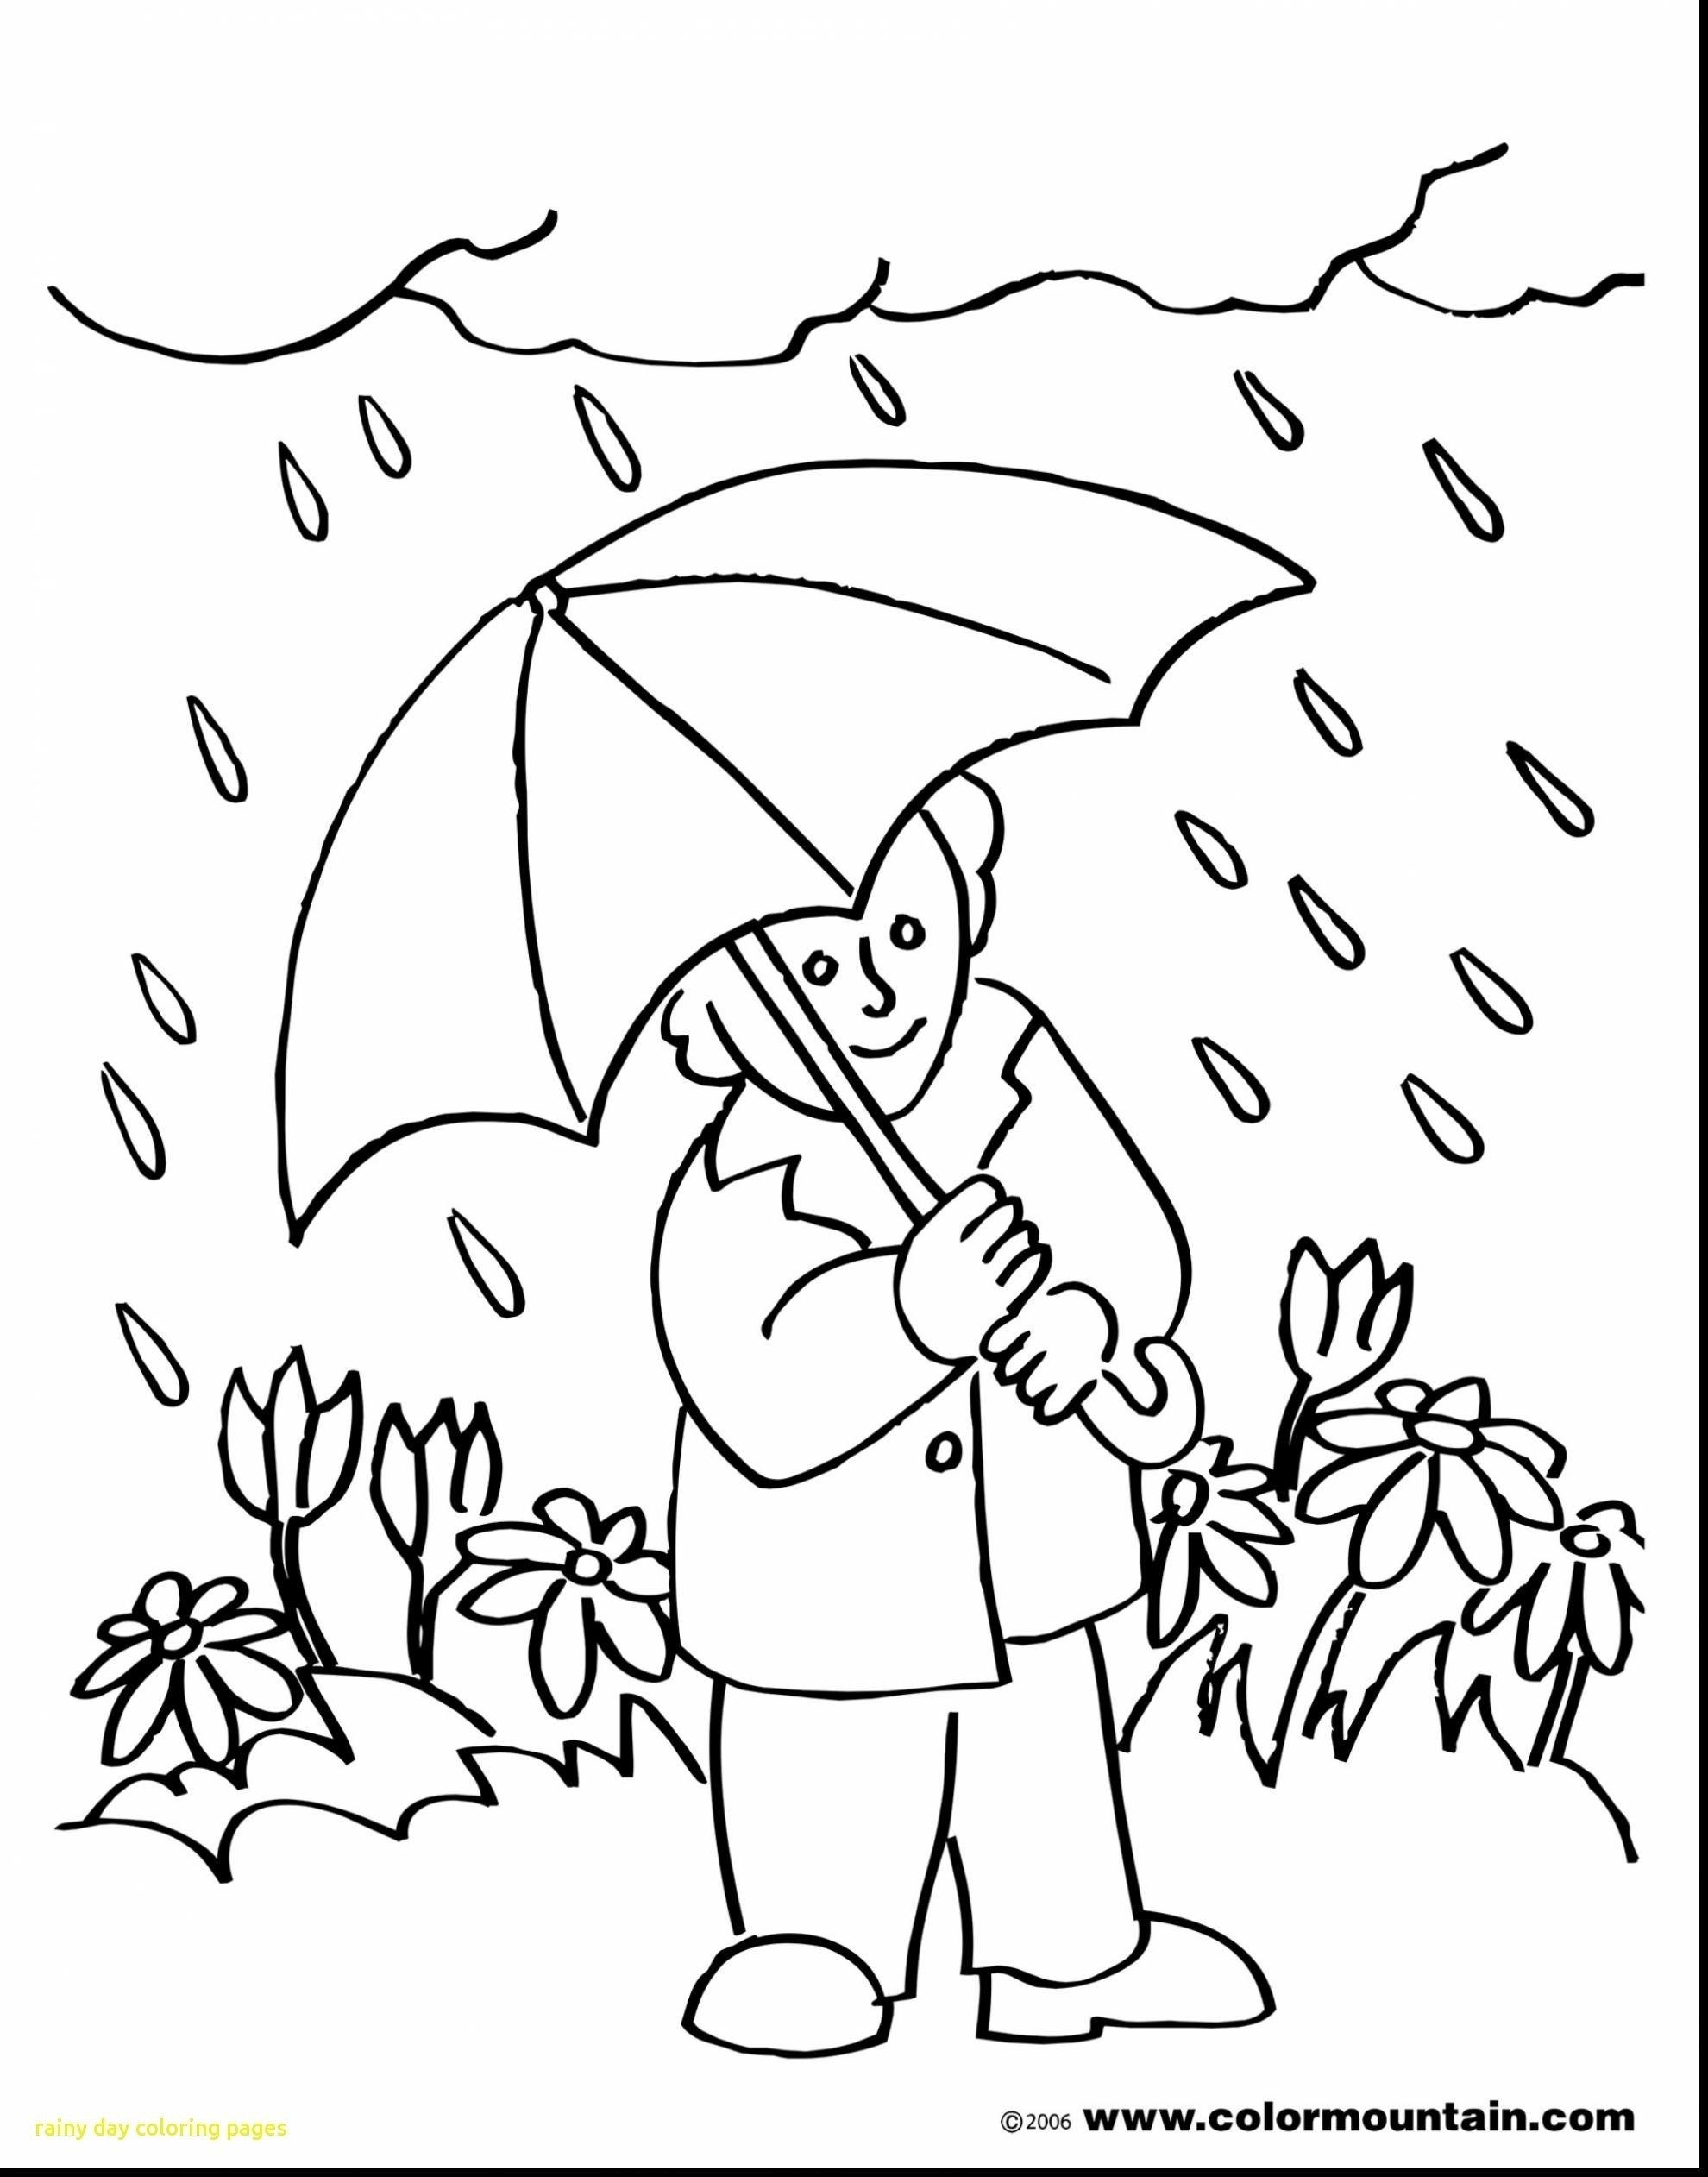 25 Wonderful Picture Of Rainy Day Coloring Pages Unicorn